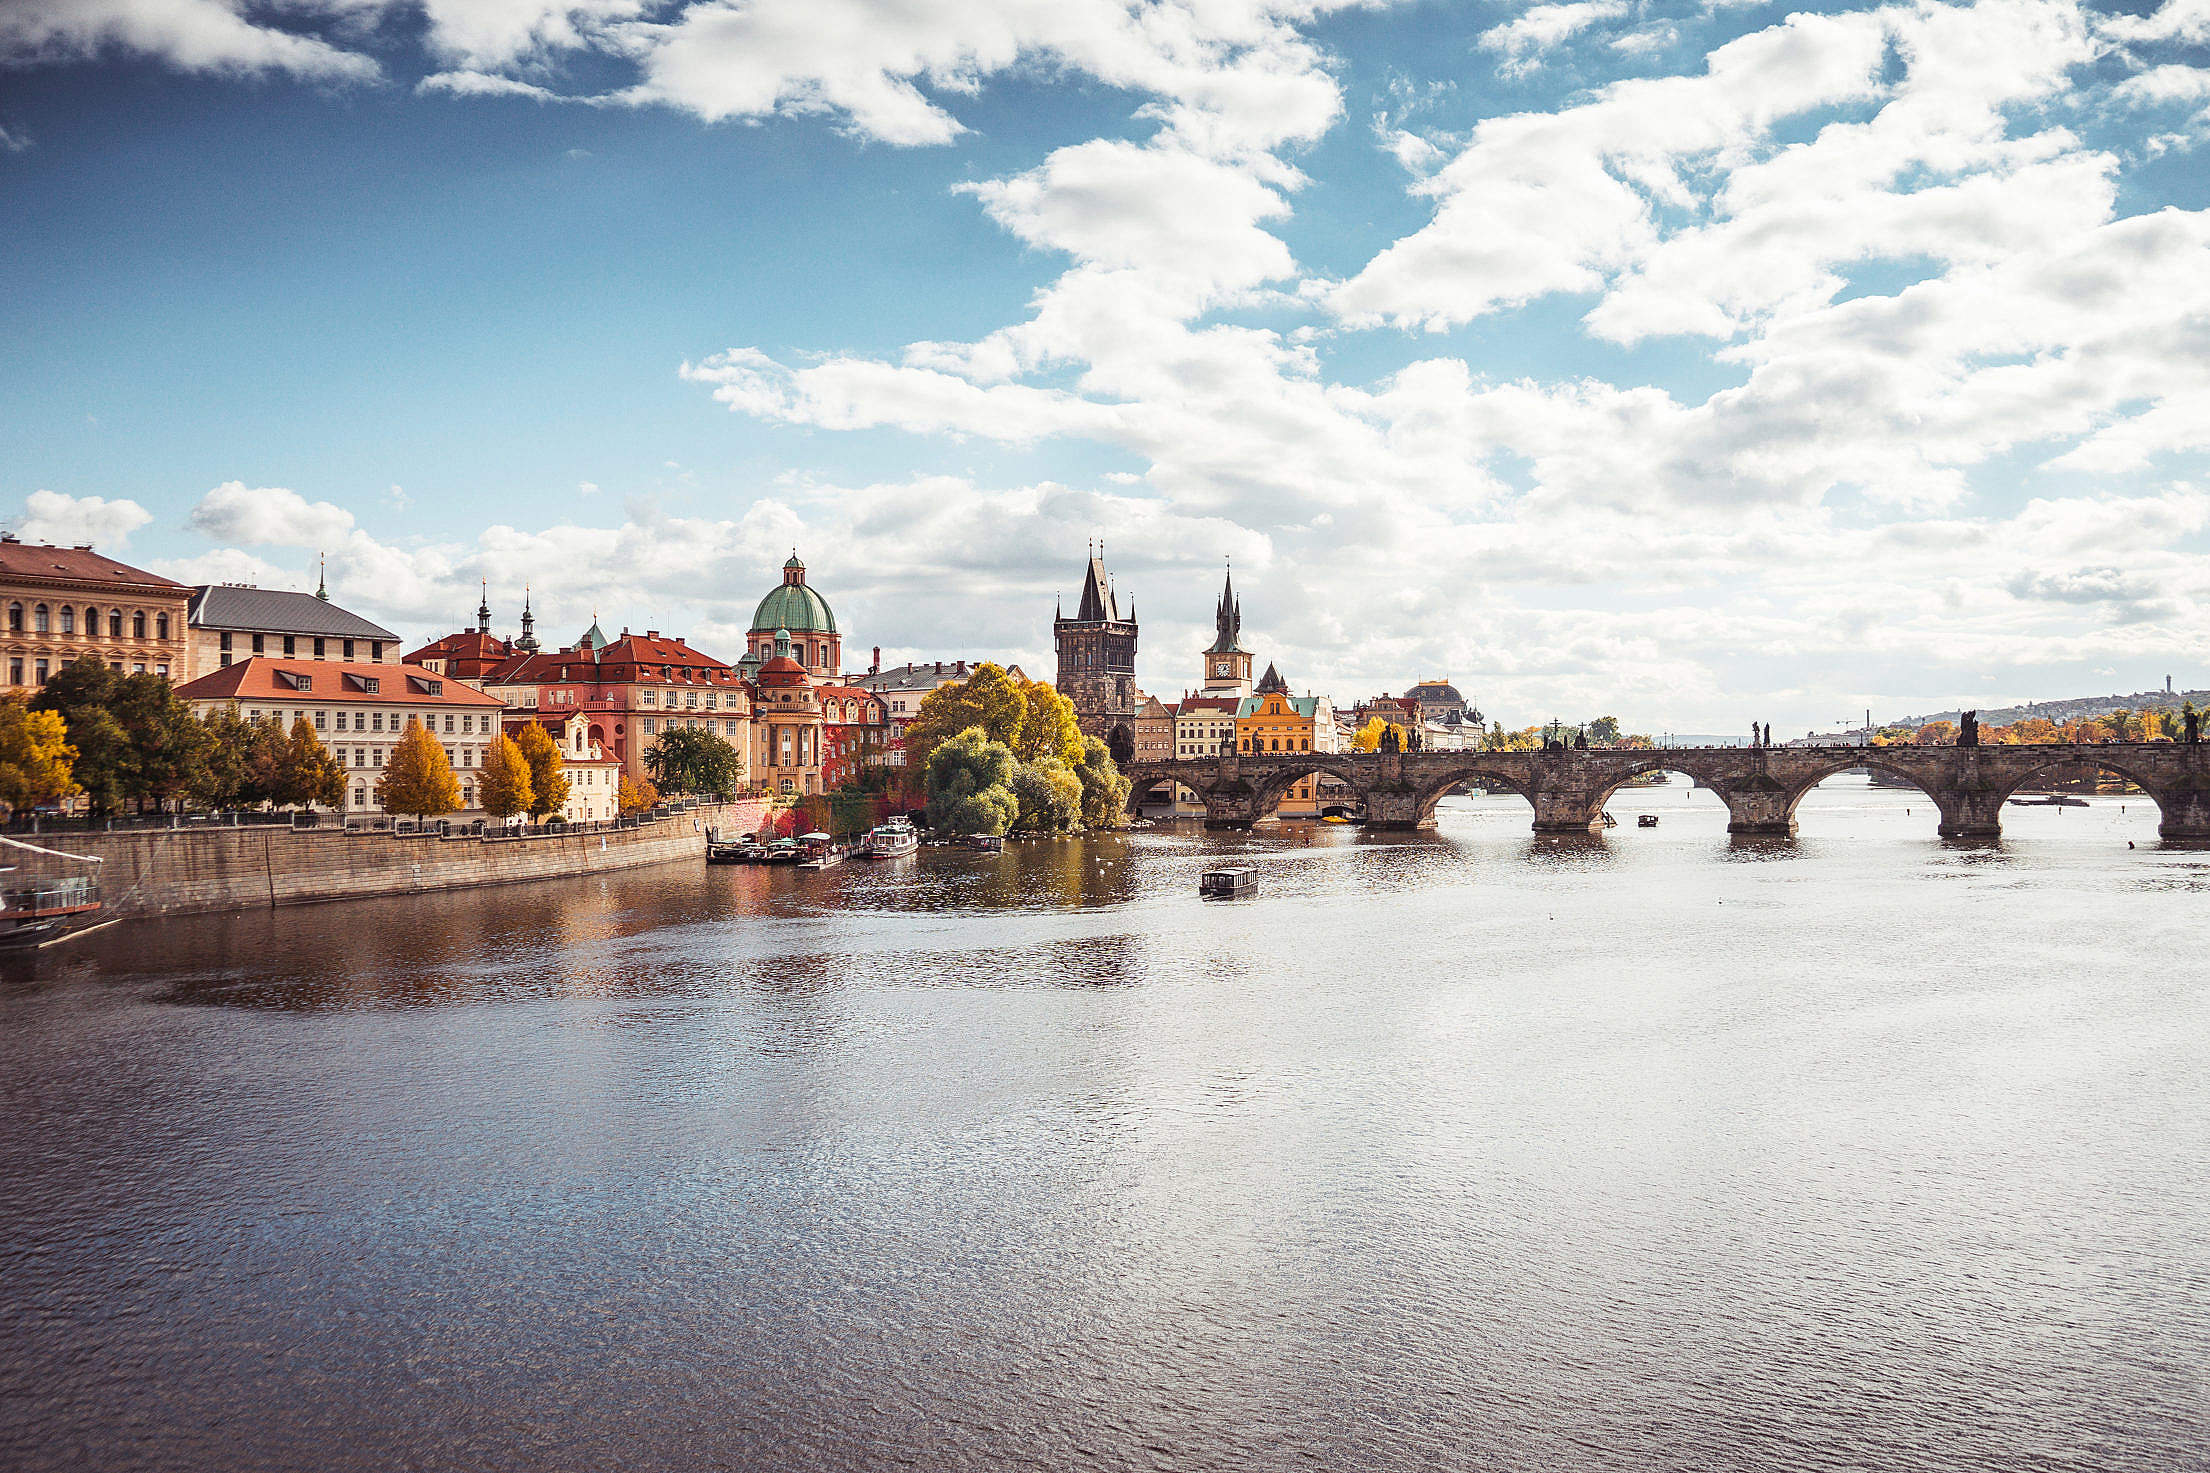 Download Prague Vltava River and Charles Bridge in Autumn Free Stock Photo